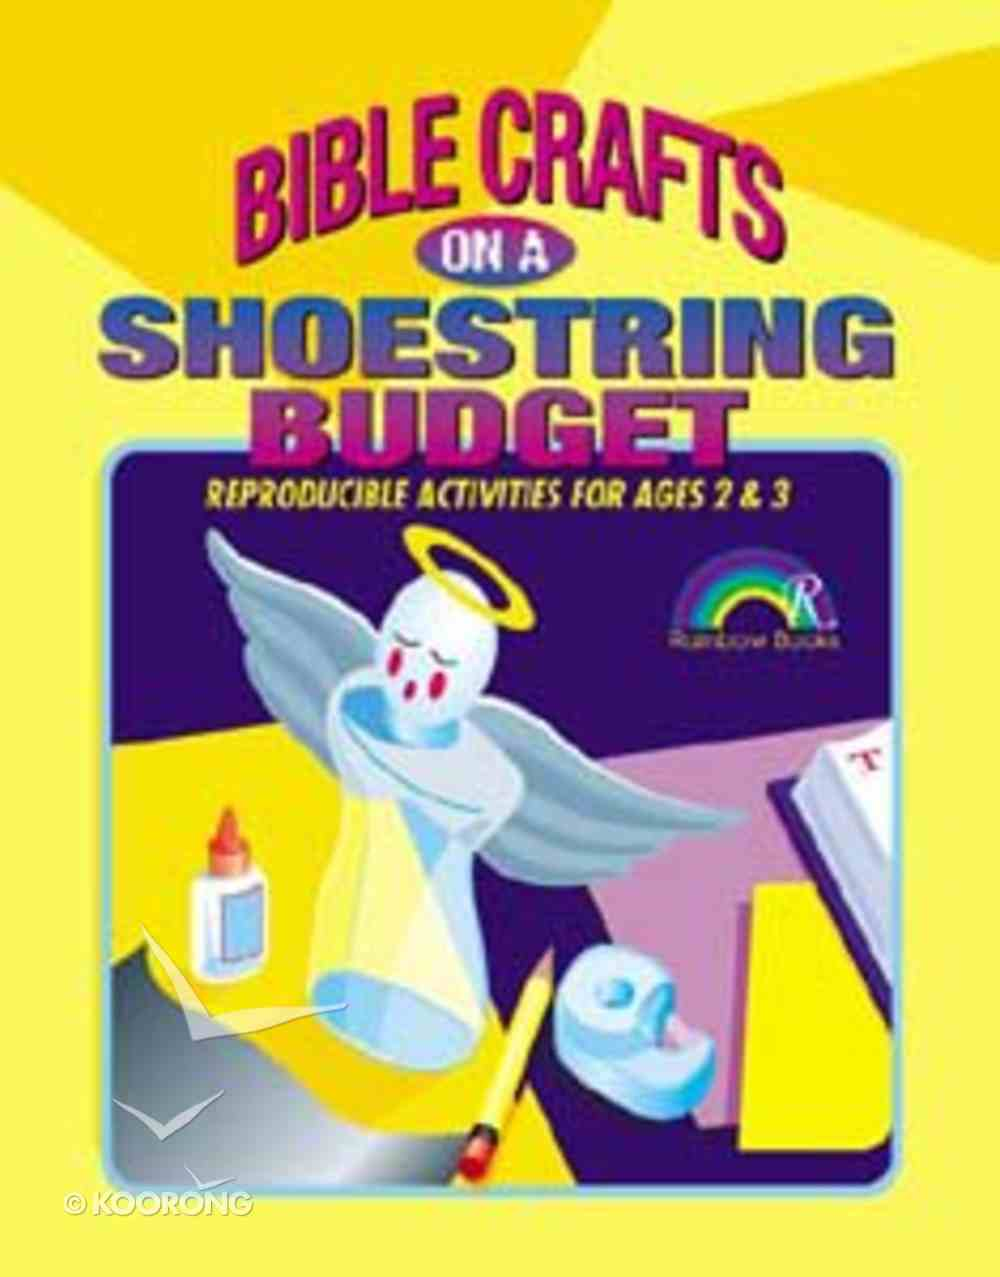 Bible Crafts on a Shoestring Budget: Ages 2&3 (Reproducible) Paperback